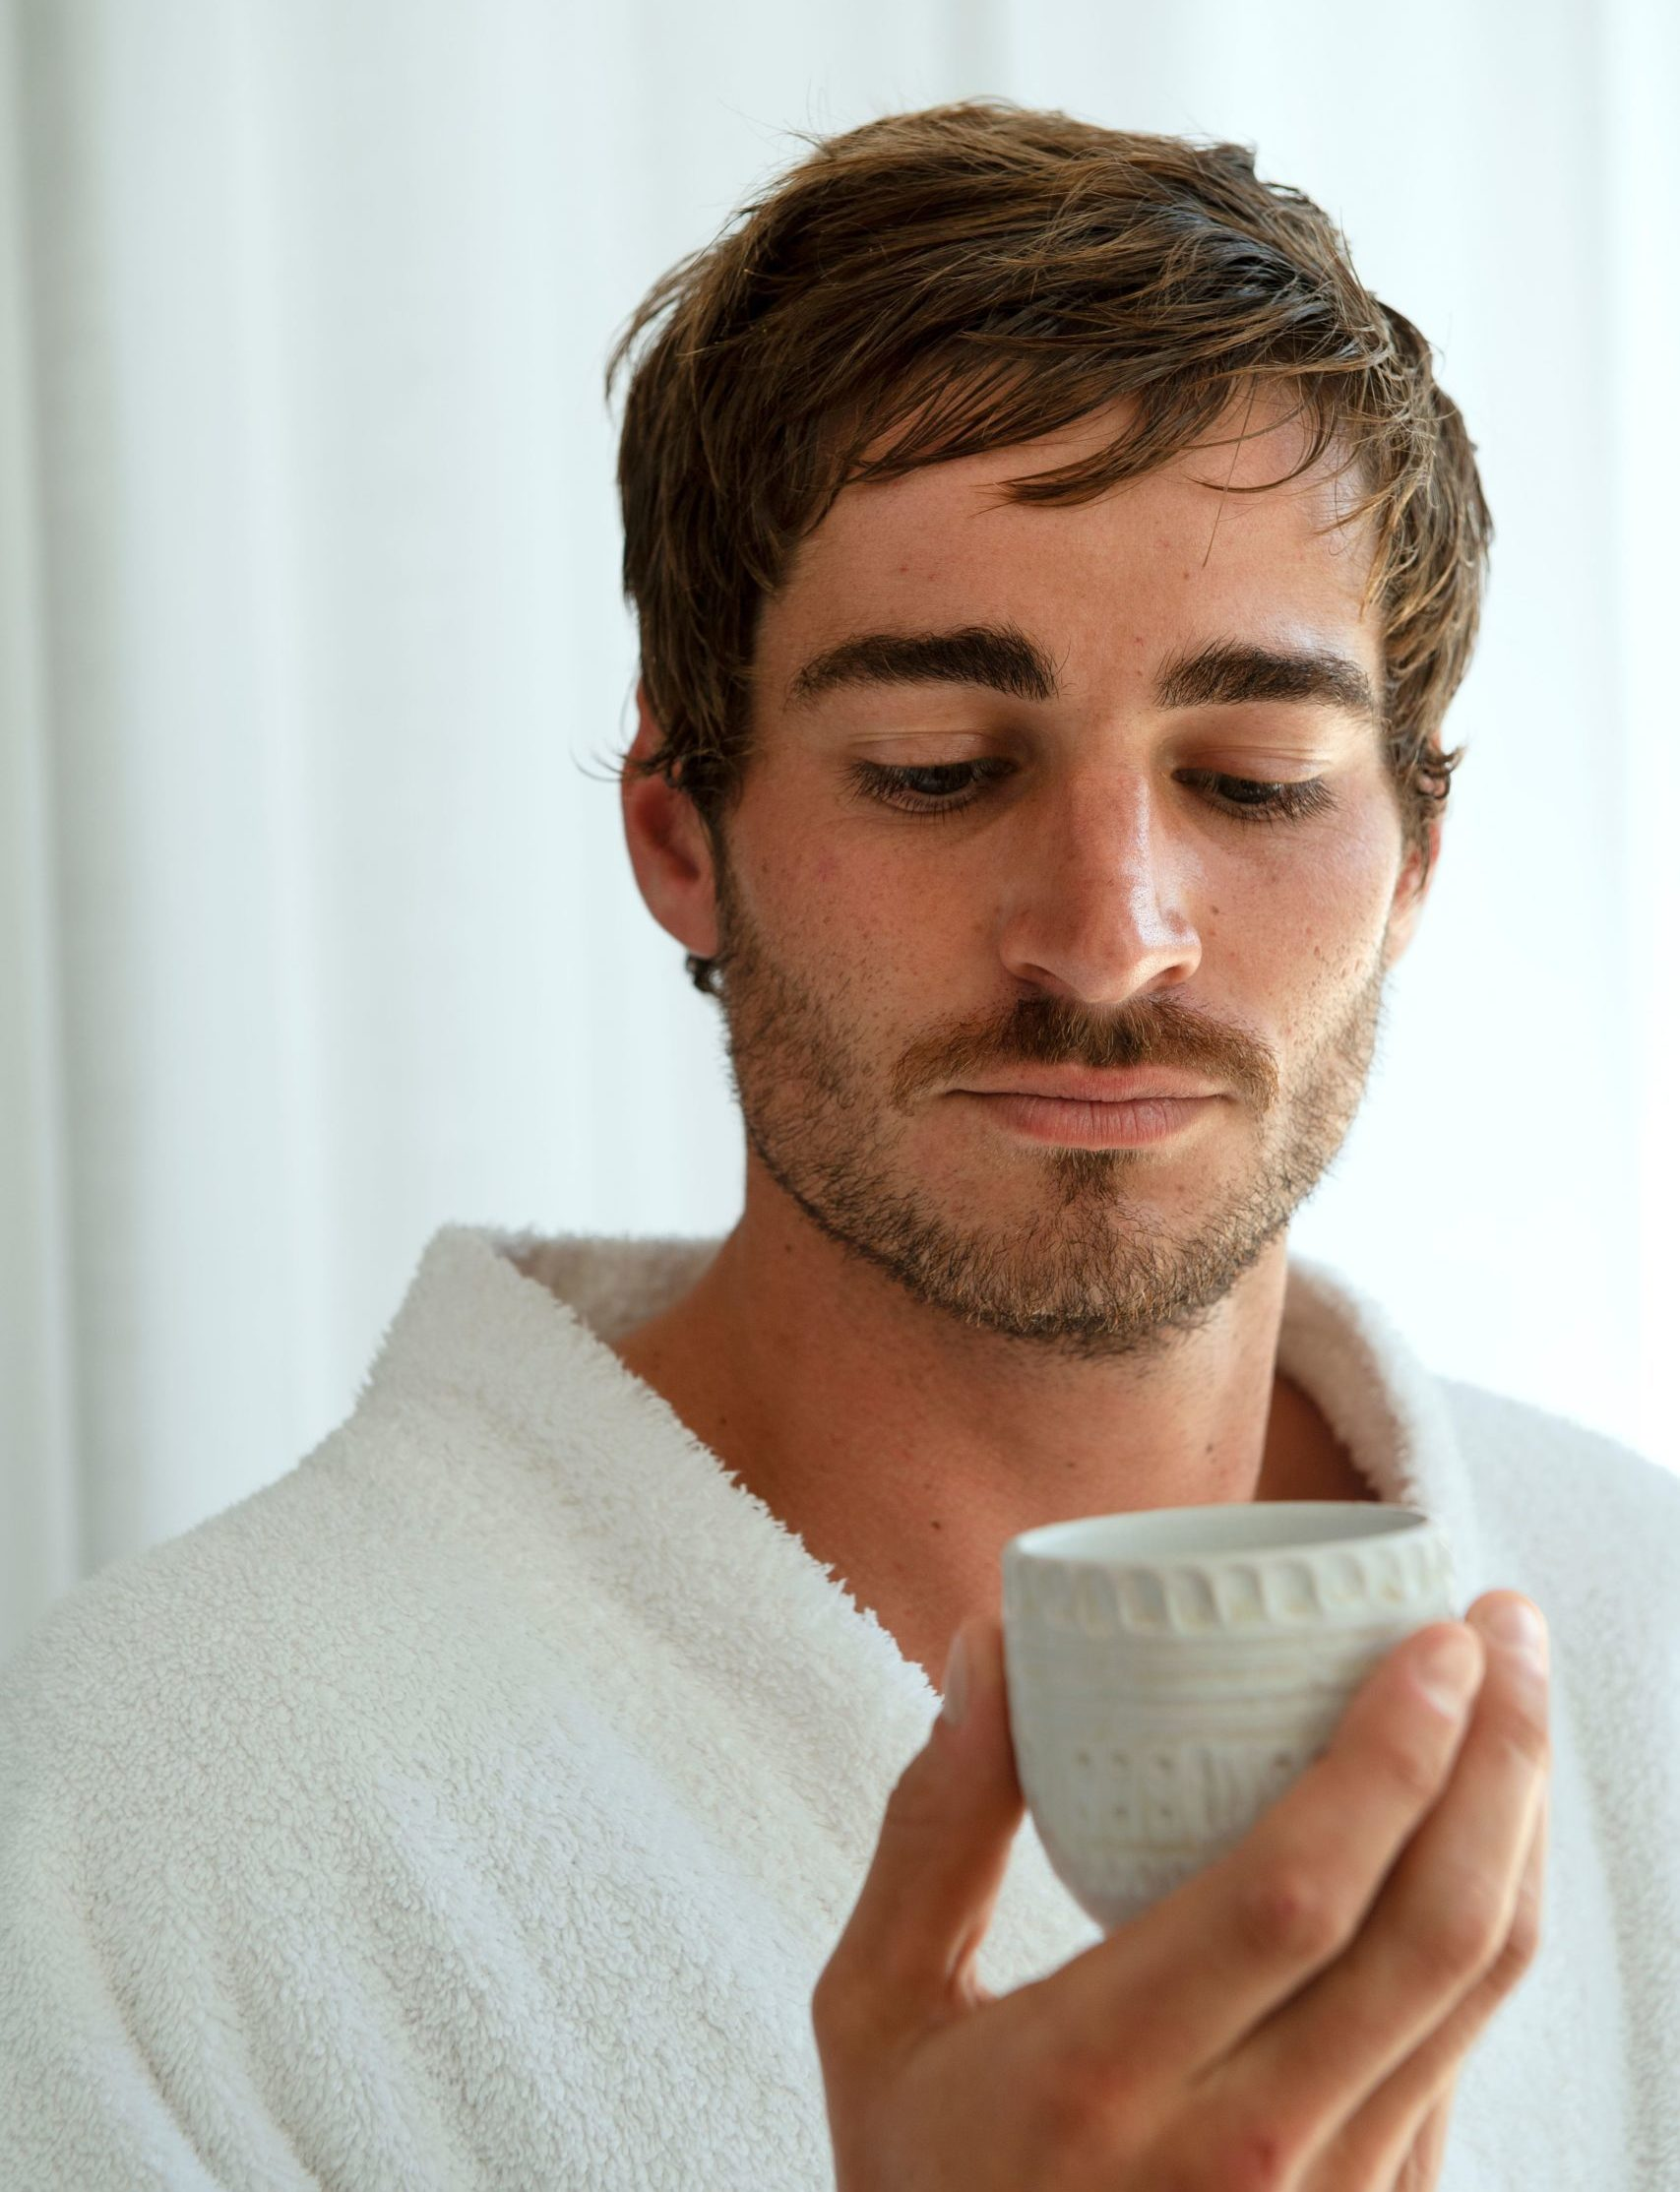 Upclose image of a man holding a cup of tea, wearing a bath robe